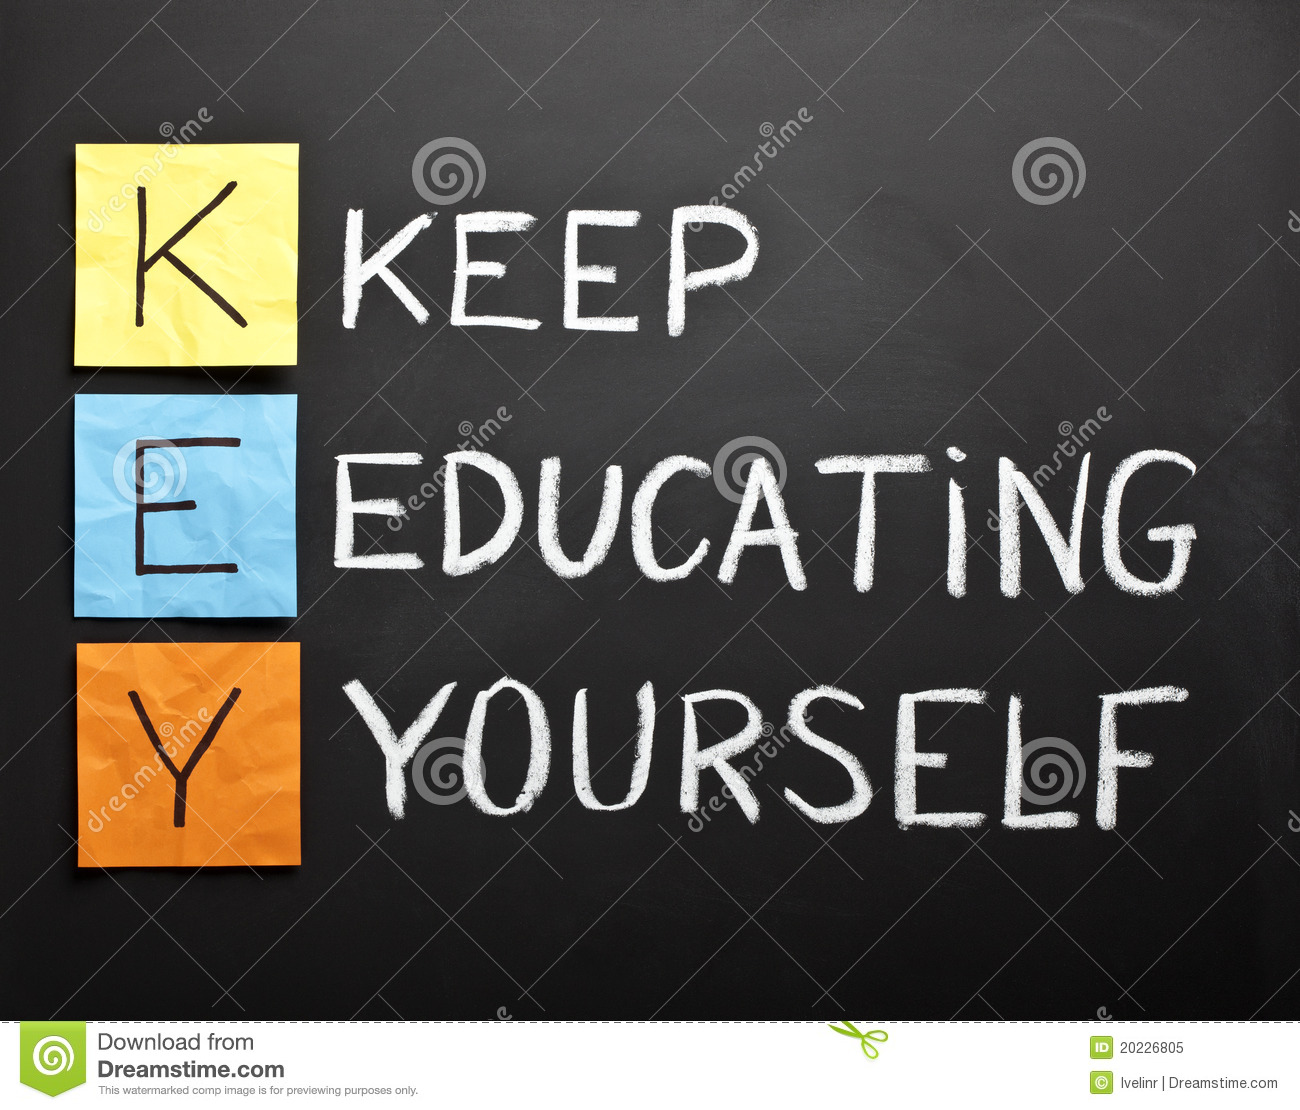 Keep-educating-yoursel...